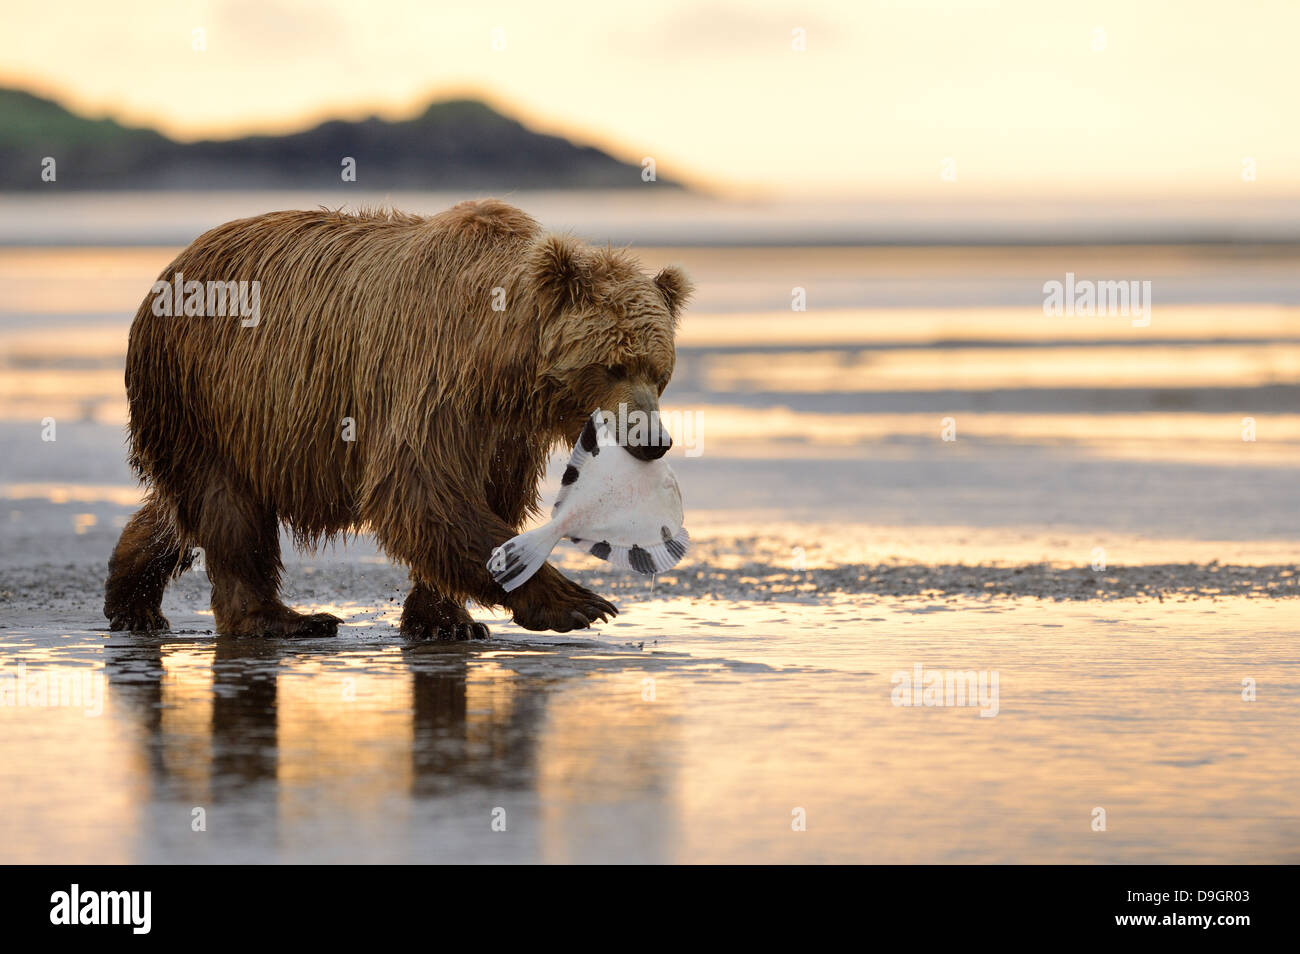 Grizzly Bear walking with caught fish in mouth Stock Photo